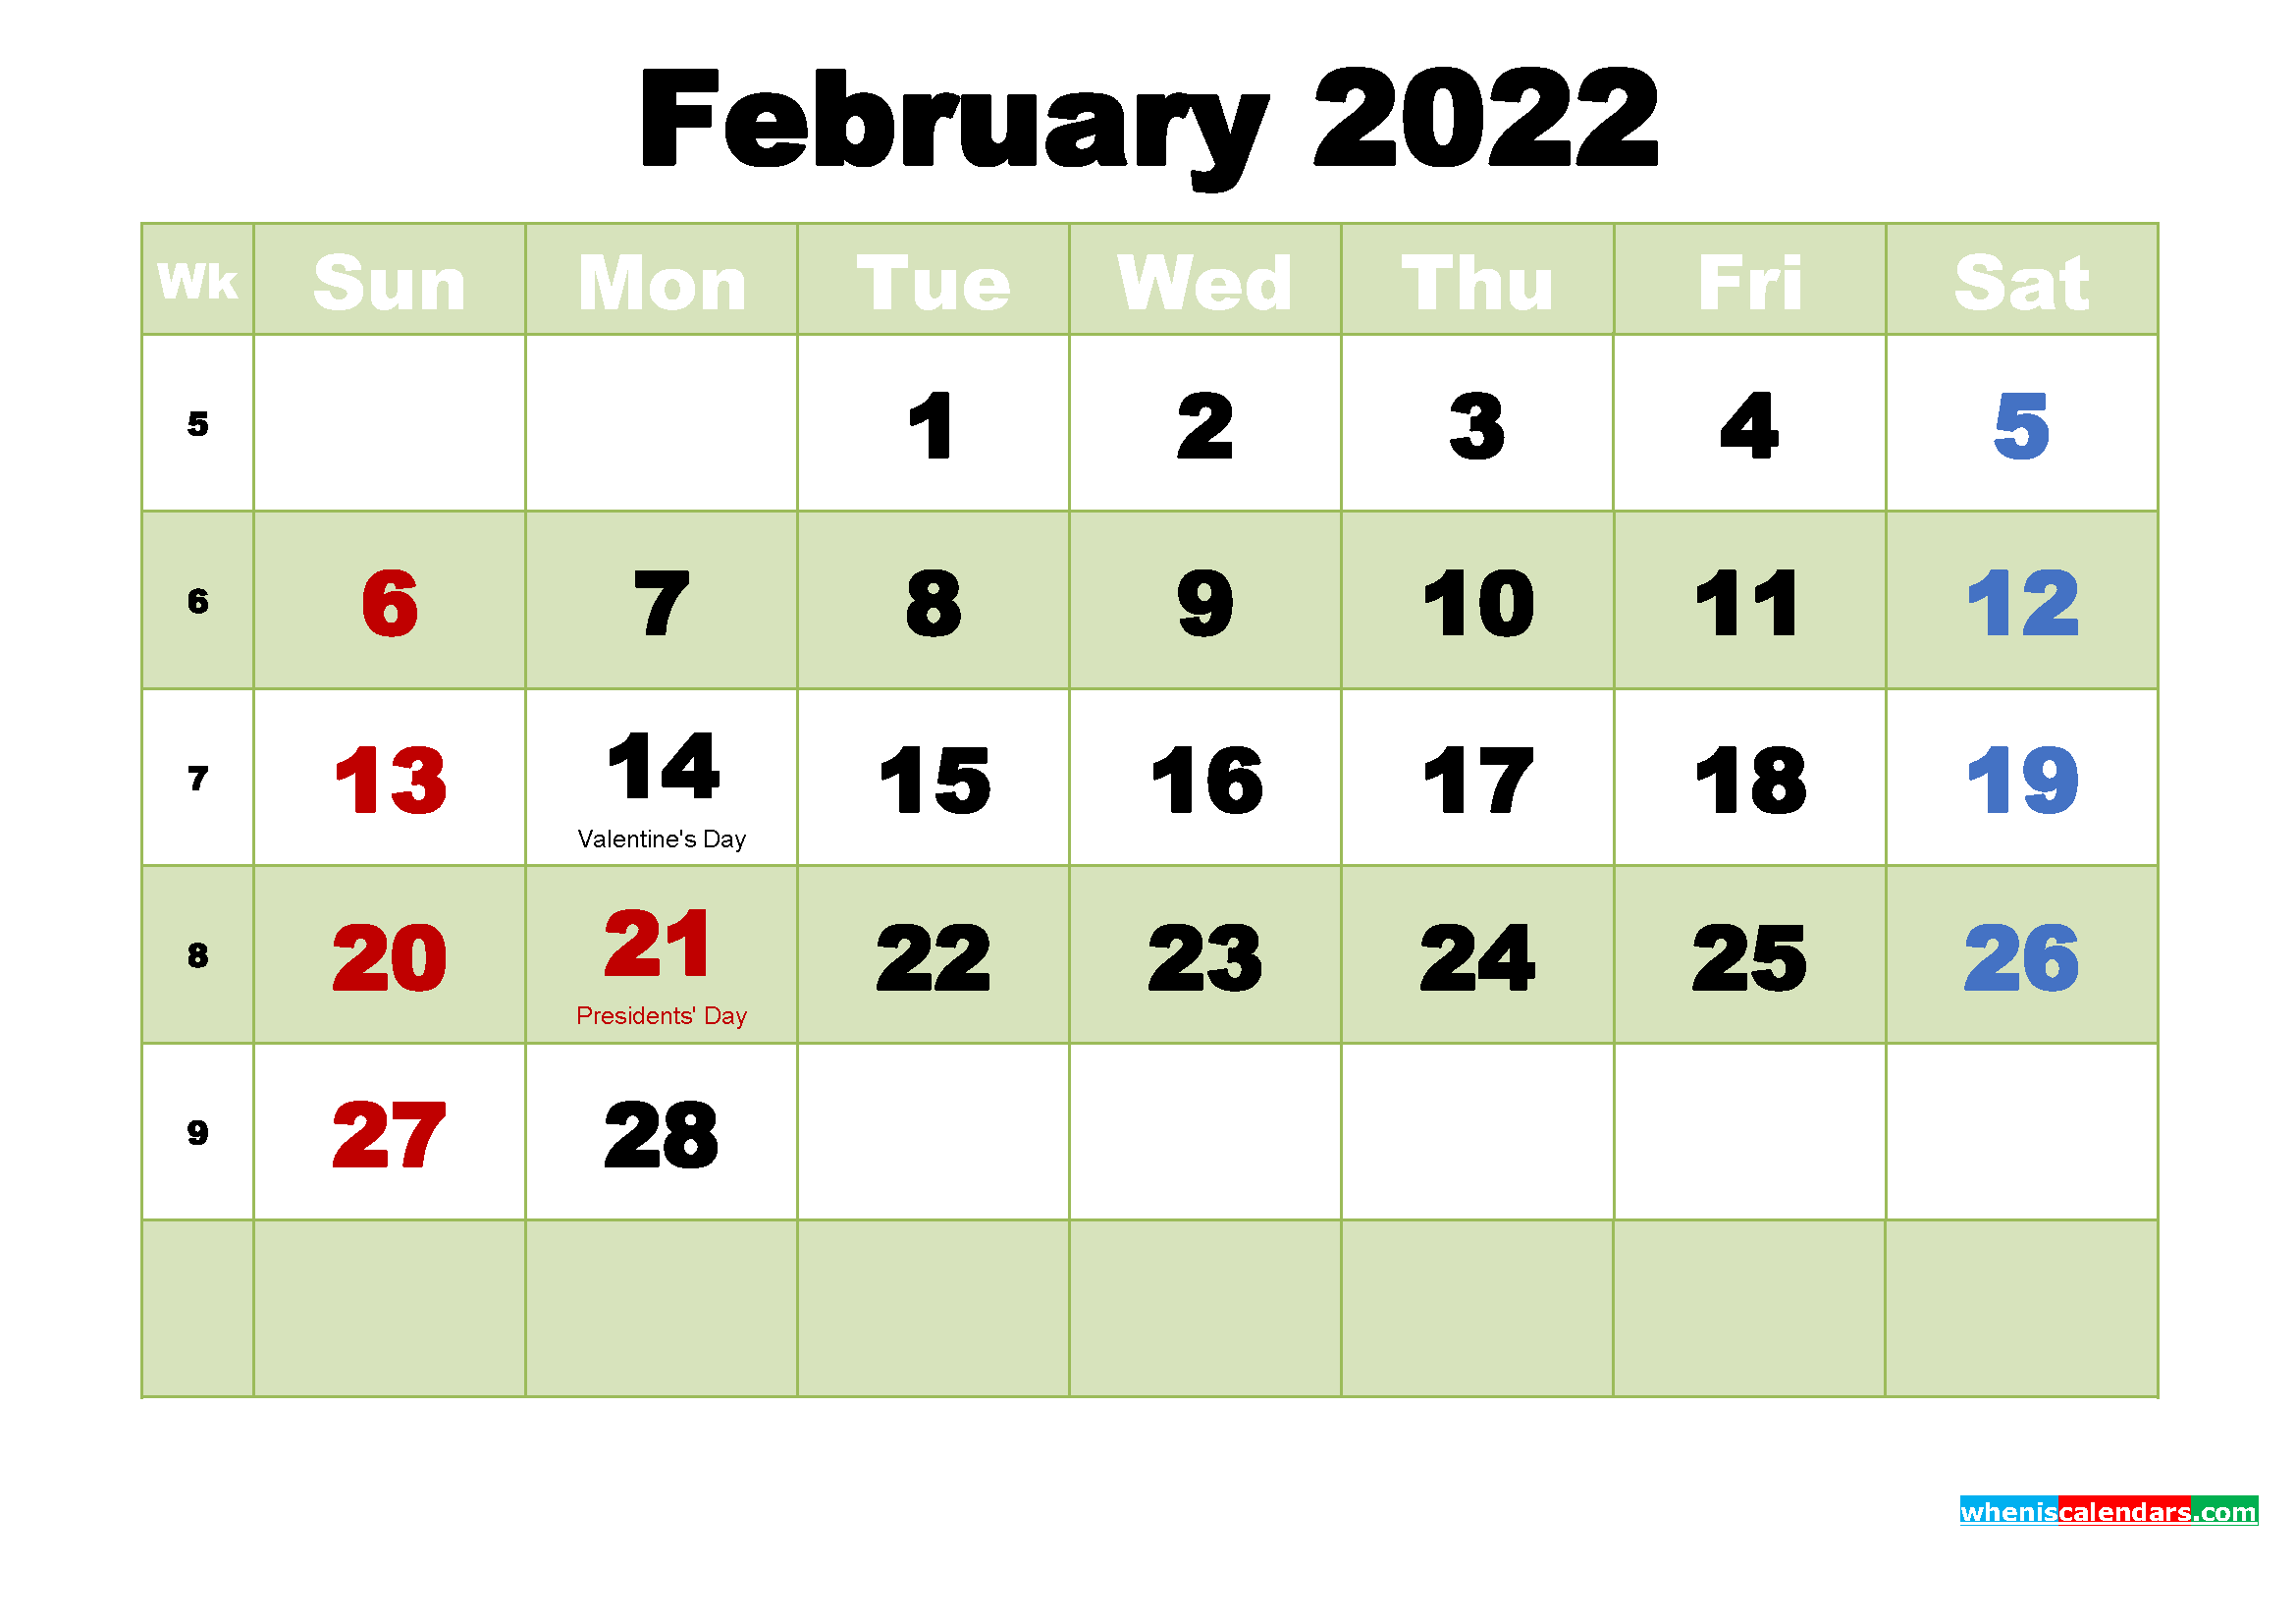 February 2022 Desktop Calendar Free Download